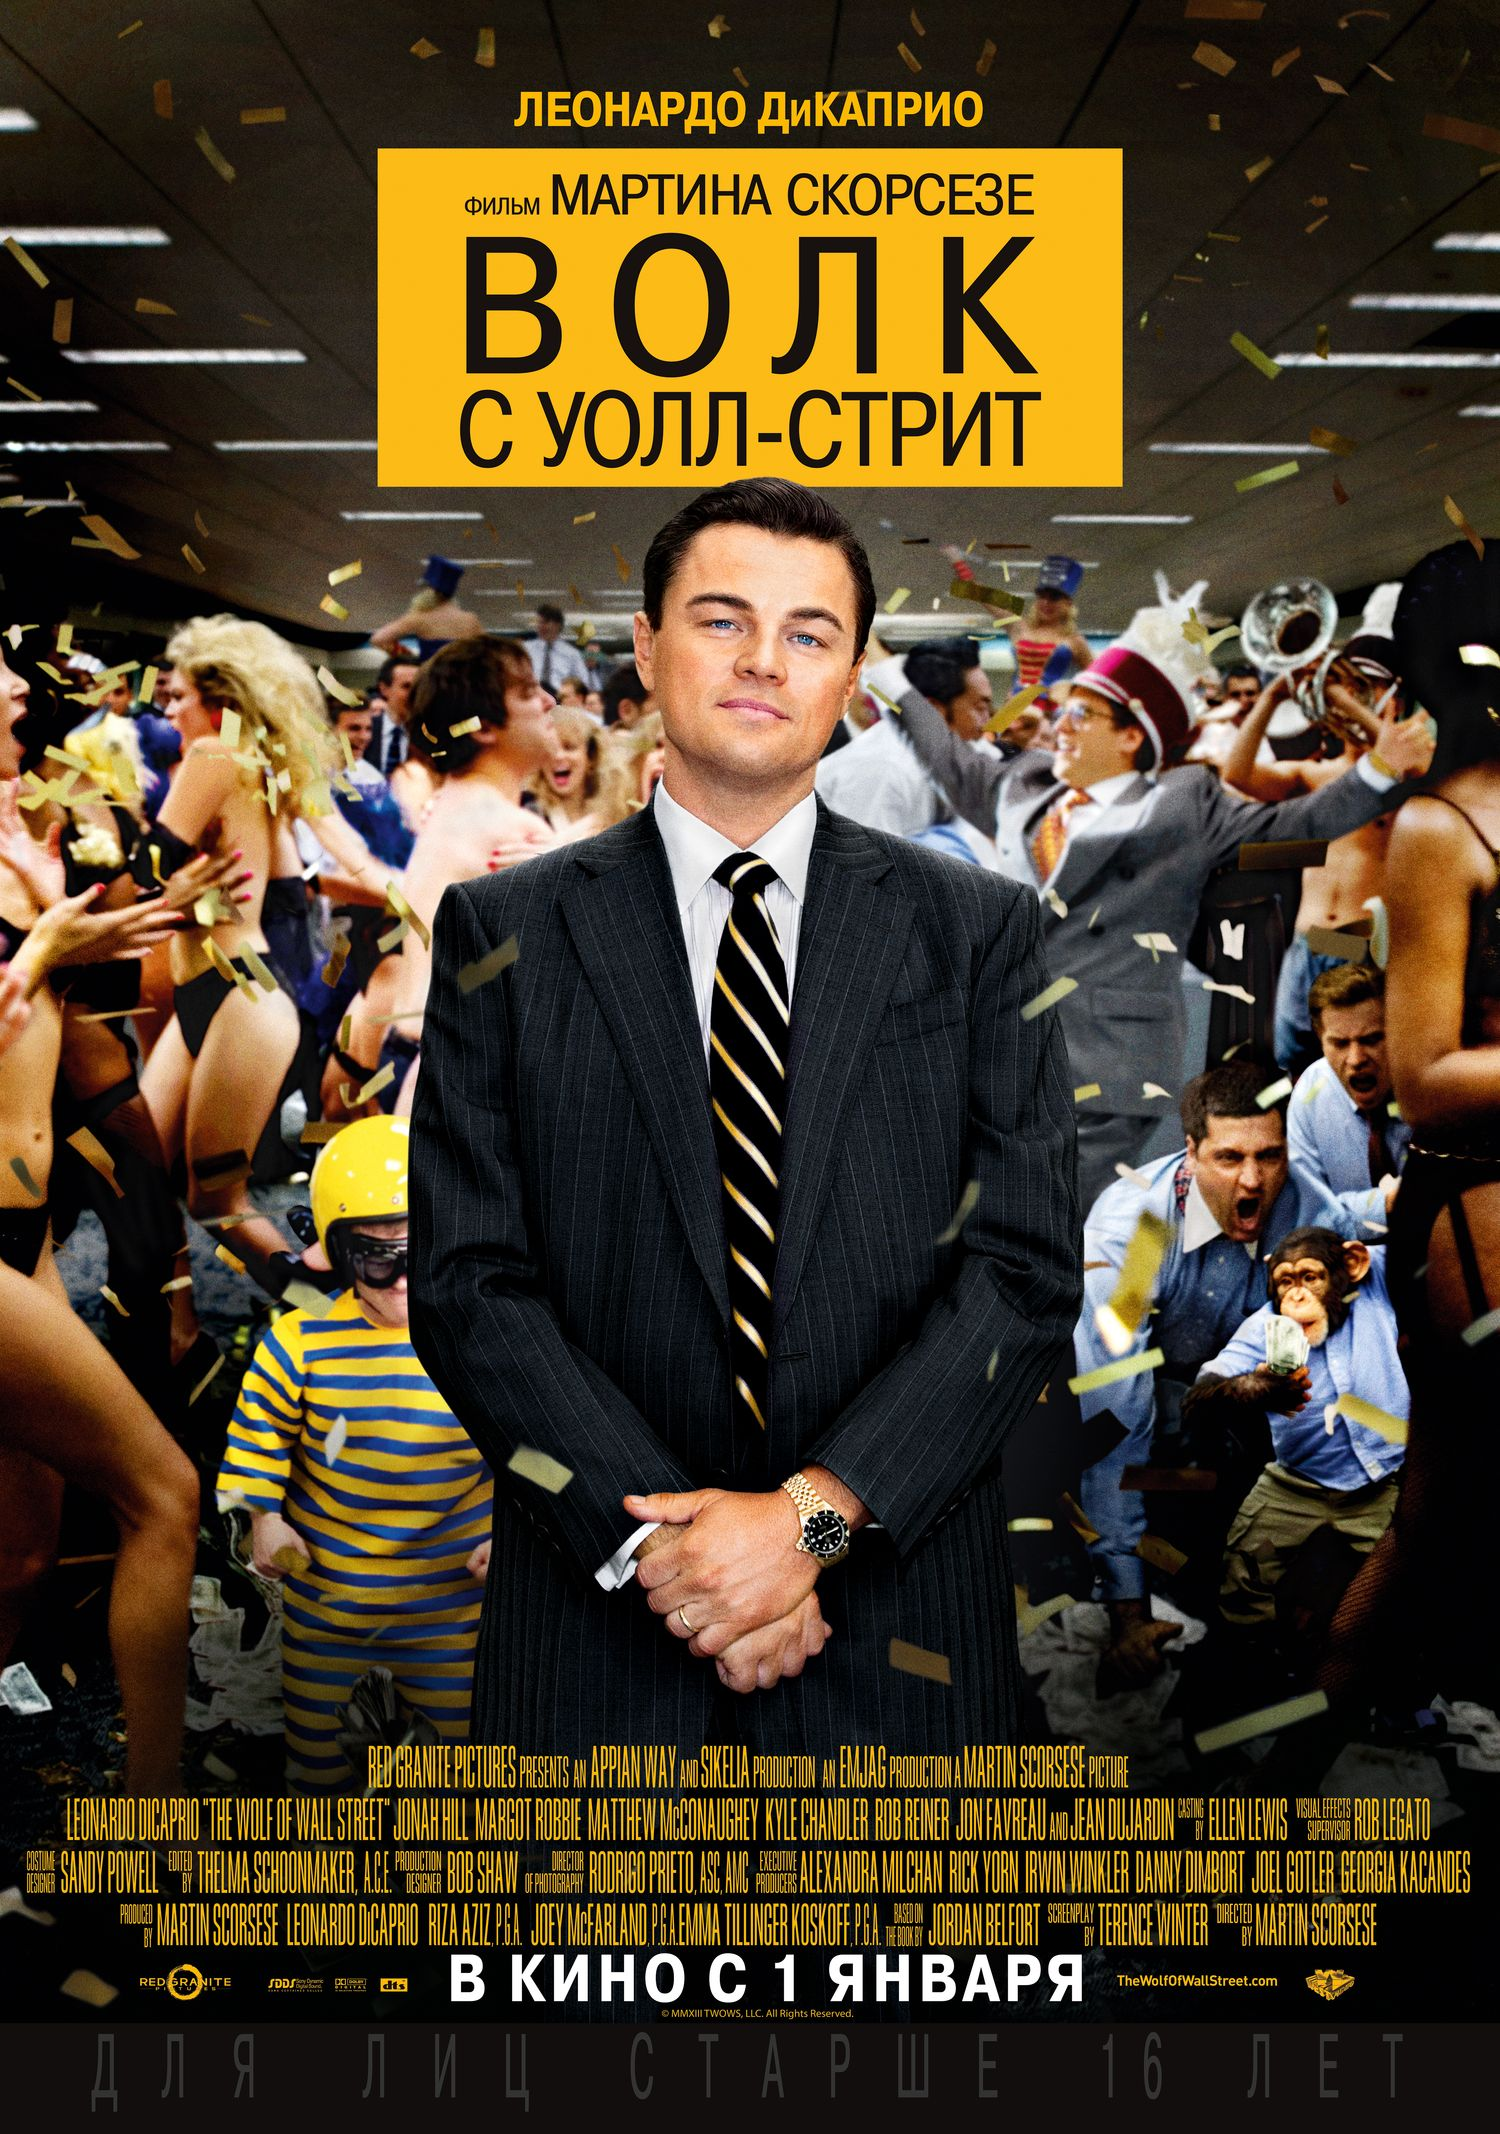 Loy machedos movie review - the wolf of wall street loy machedo